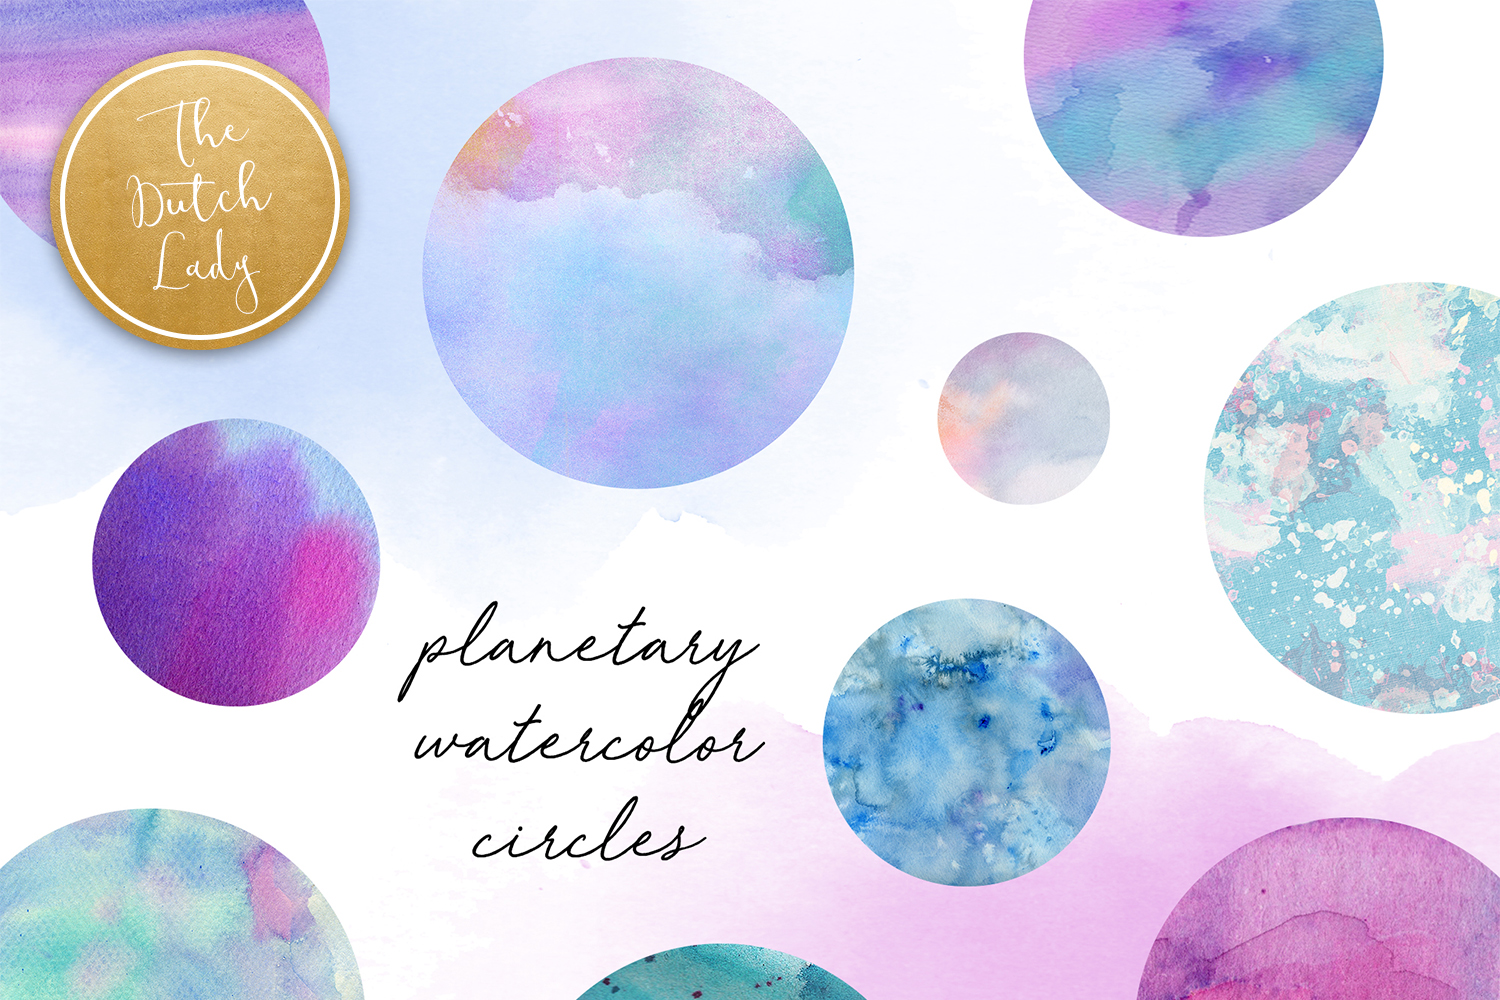 Watercolor circle clipart graphic library download Watercolor Planetary Circle Clipart - Vsual graphic library download